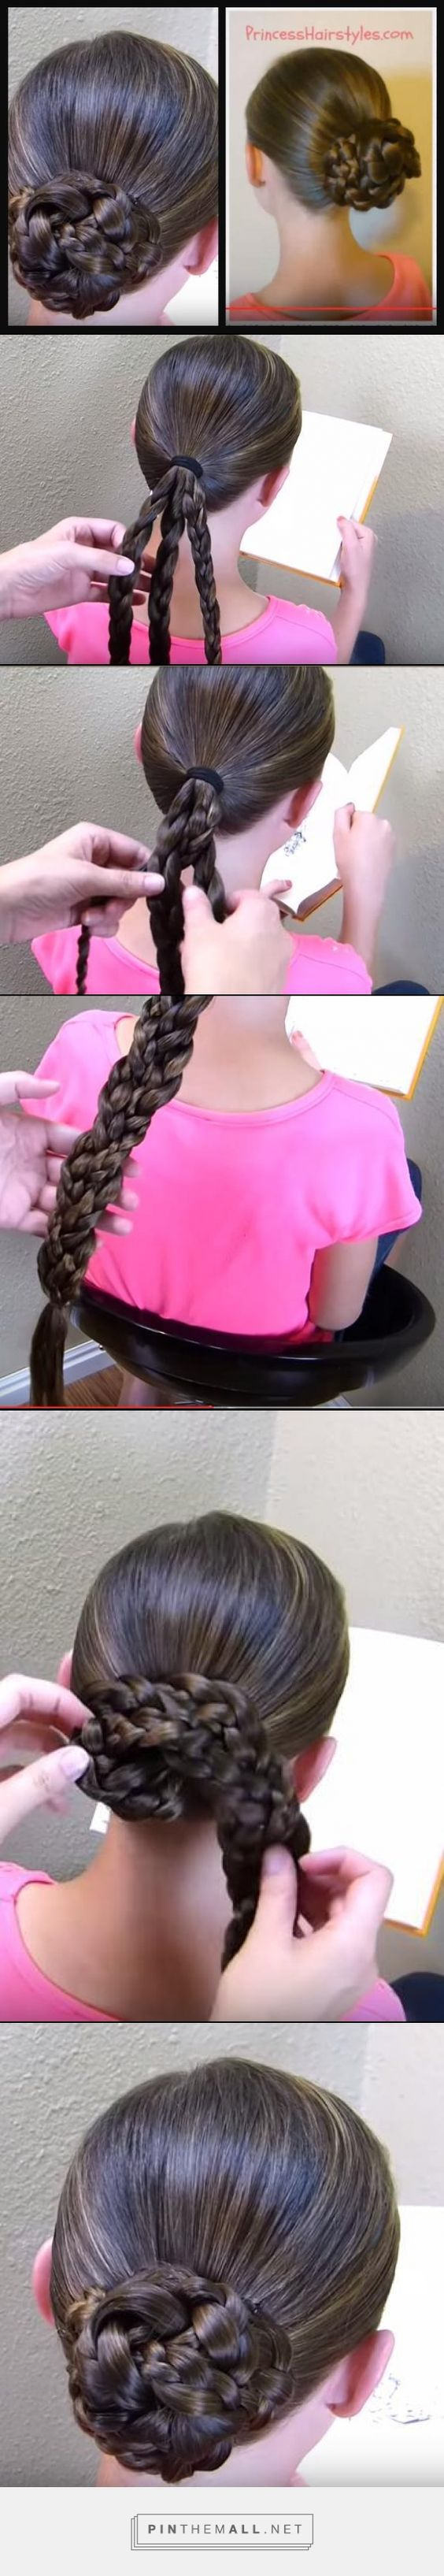 """//Easy Triple Braid Bun, Back To School Basic Hairstyles// using 3 braids braided together :)).. The real """"trick"""" to this bun is the way in which the strands are braided together and how the hair is wrapped around the ponytail. You will want to keep things loose for the bun to lay more nicely, especially if your hair is long"""